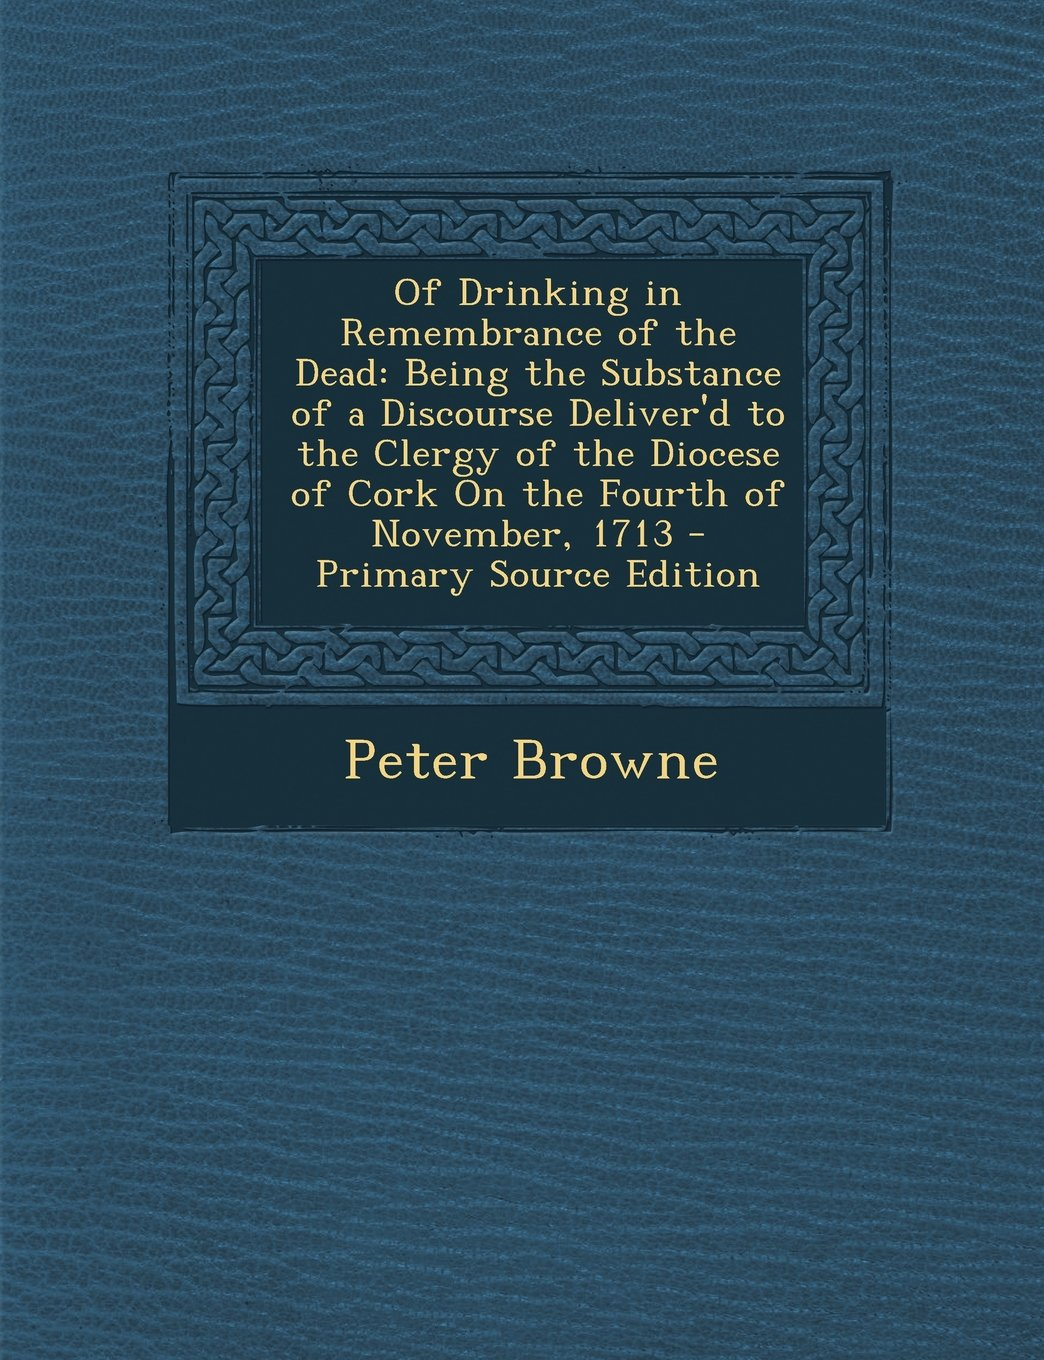 Read Online Of Drinking in Remembrance of the Dead: Being the Substance of a Discourse Deliver'd to the Clergy of the Diocese of Cork on the Fourth of November, 1 ebook